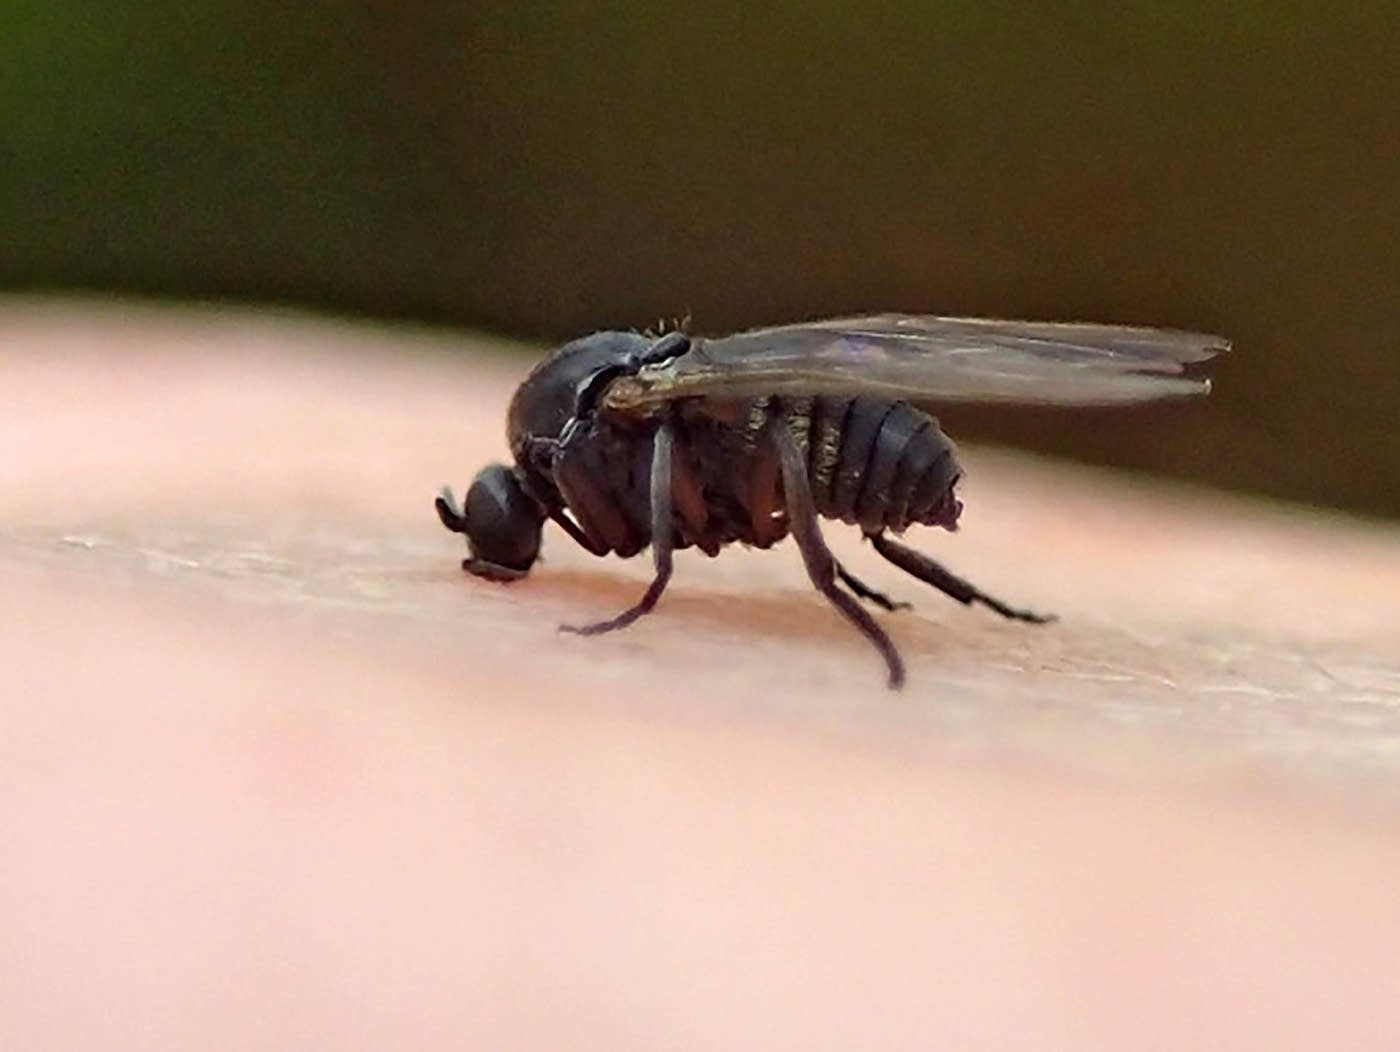 Tiny Black Flying Bugs In House 2020 - Image By mprnews